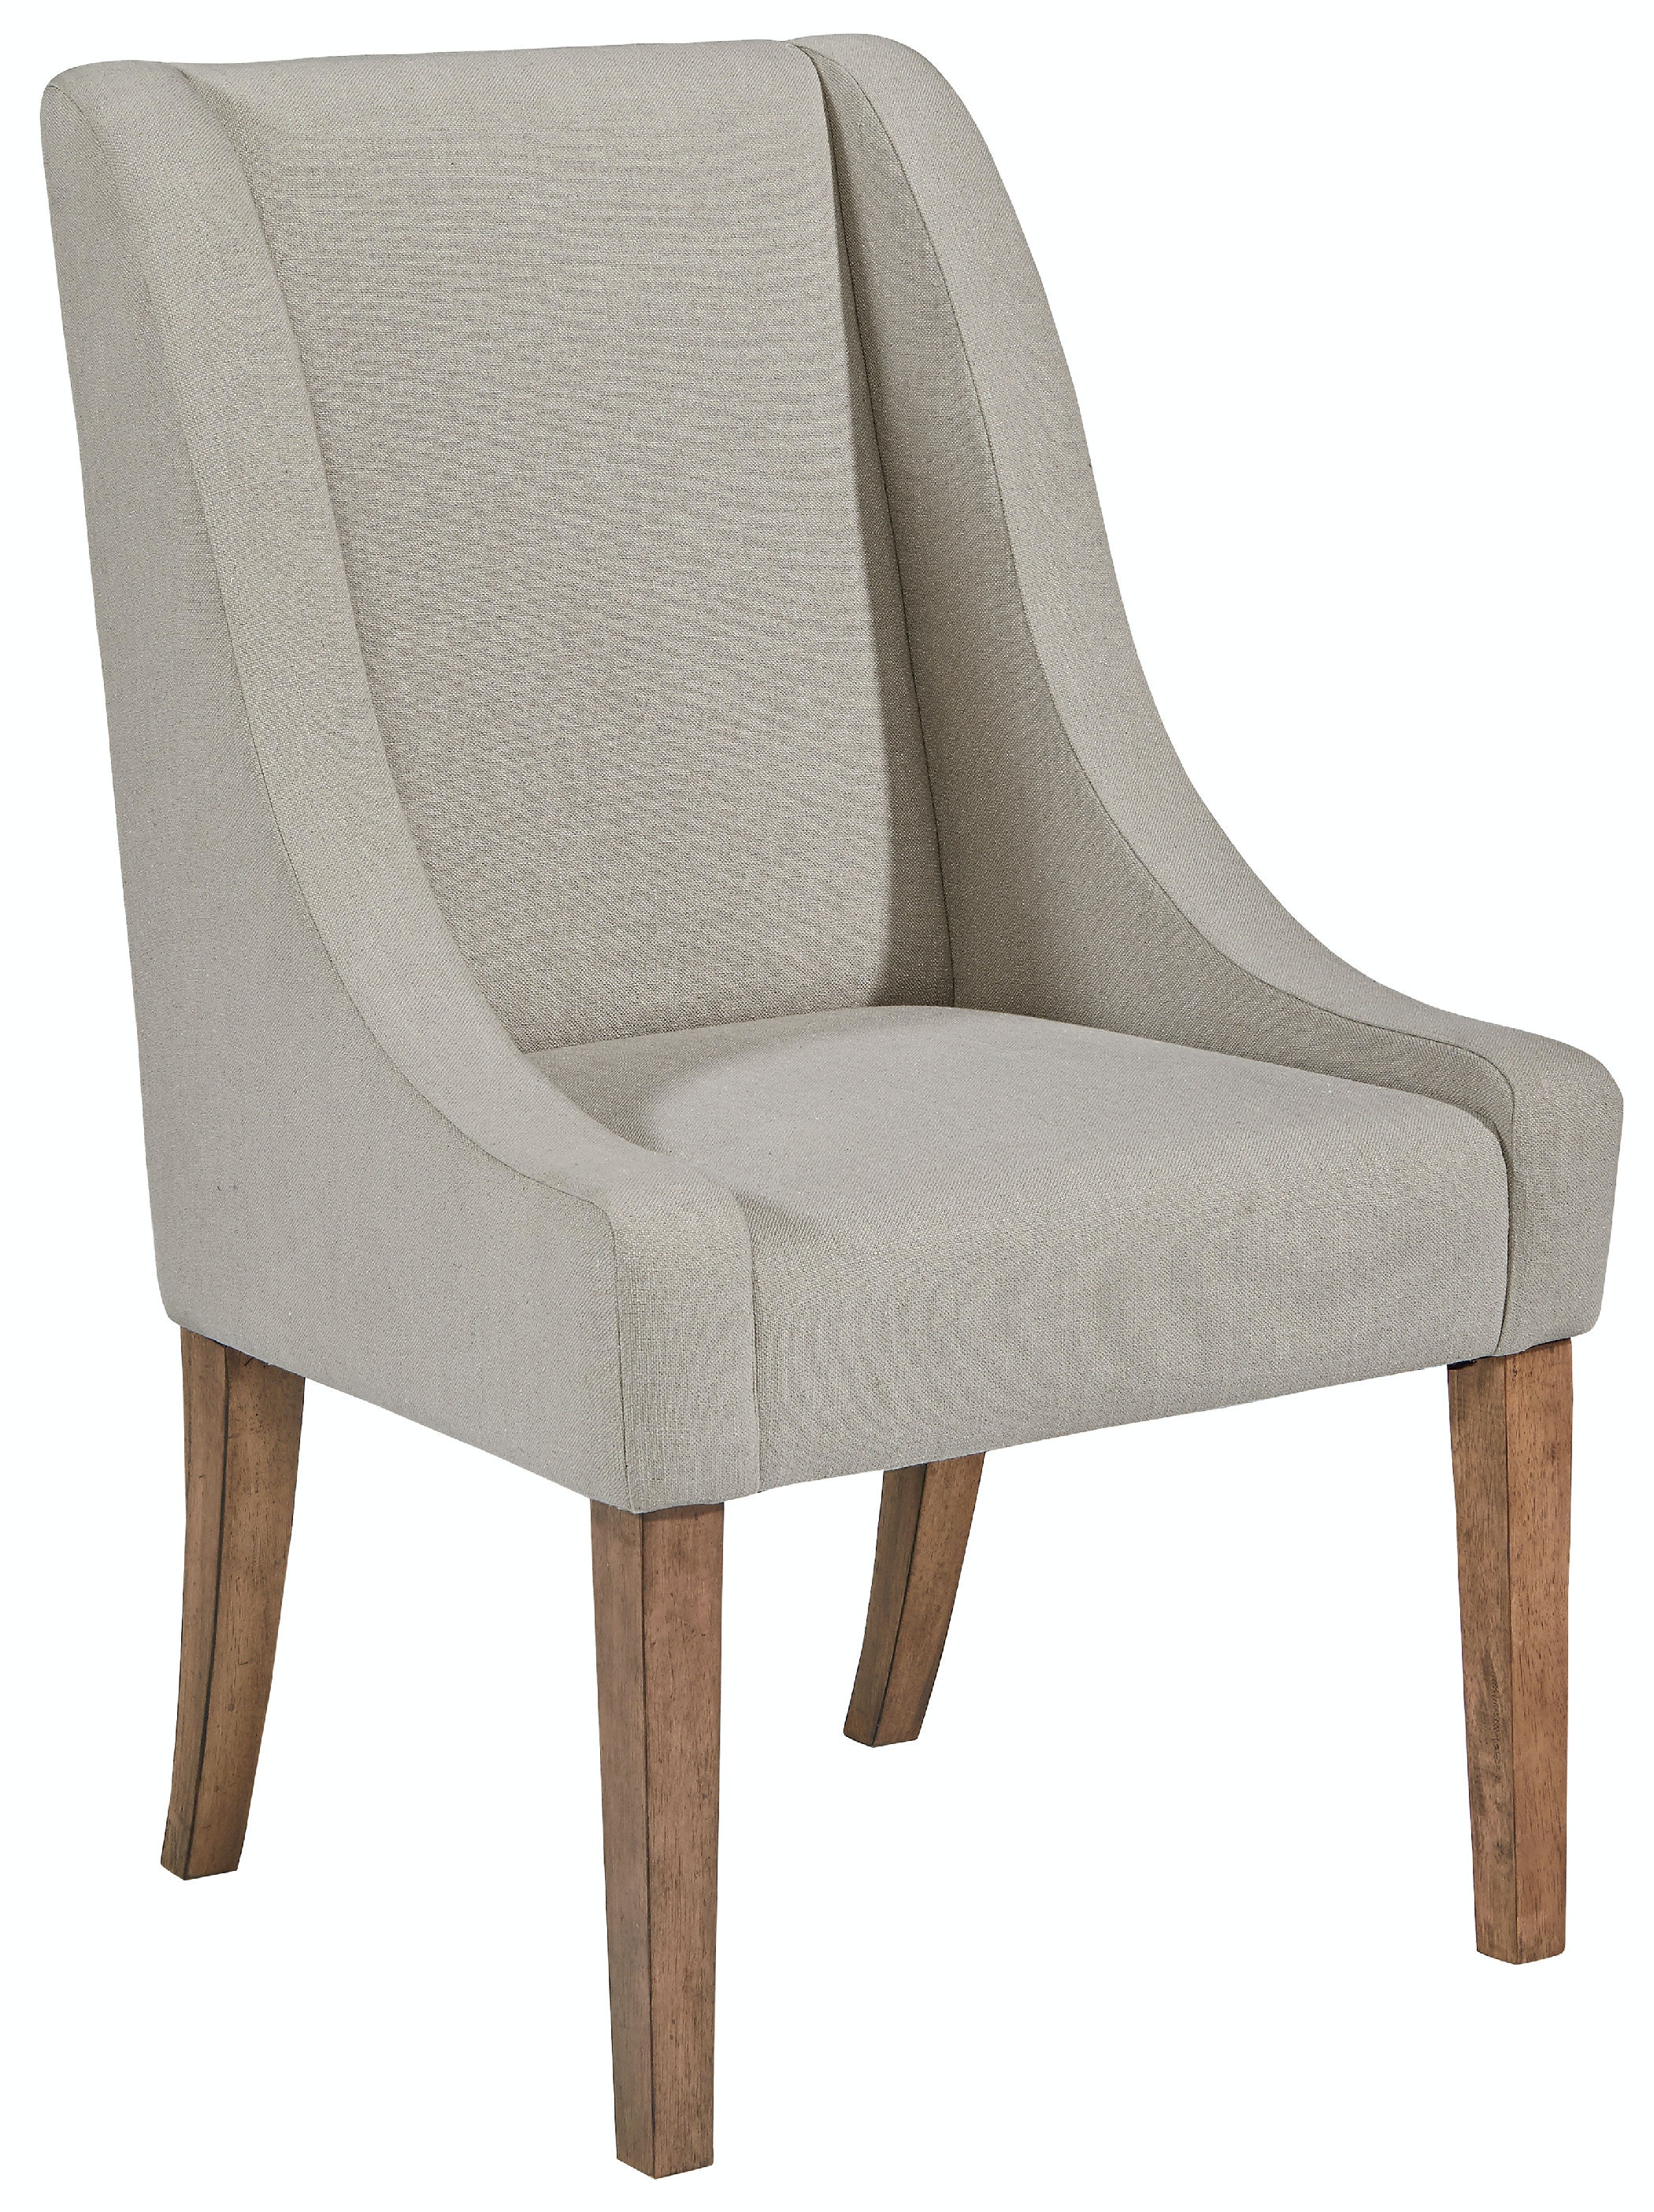 Magnolia Home   Demi Wing Upholstered Side Chair ST:463594